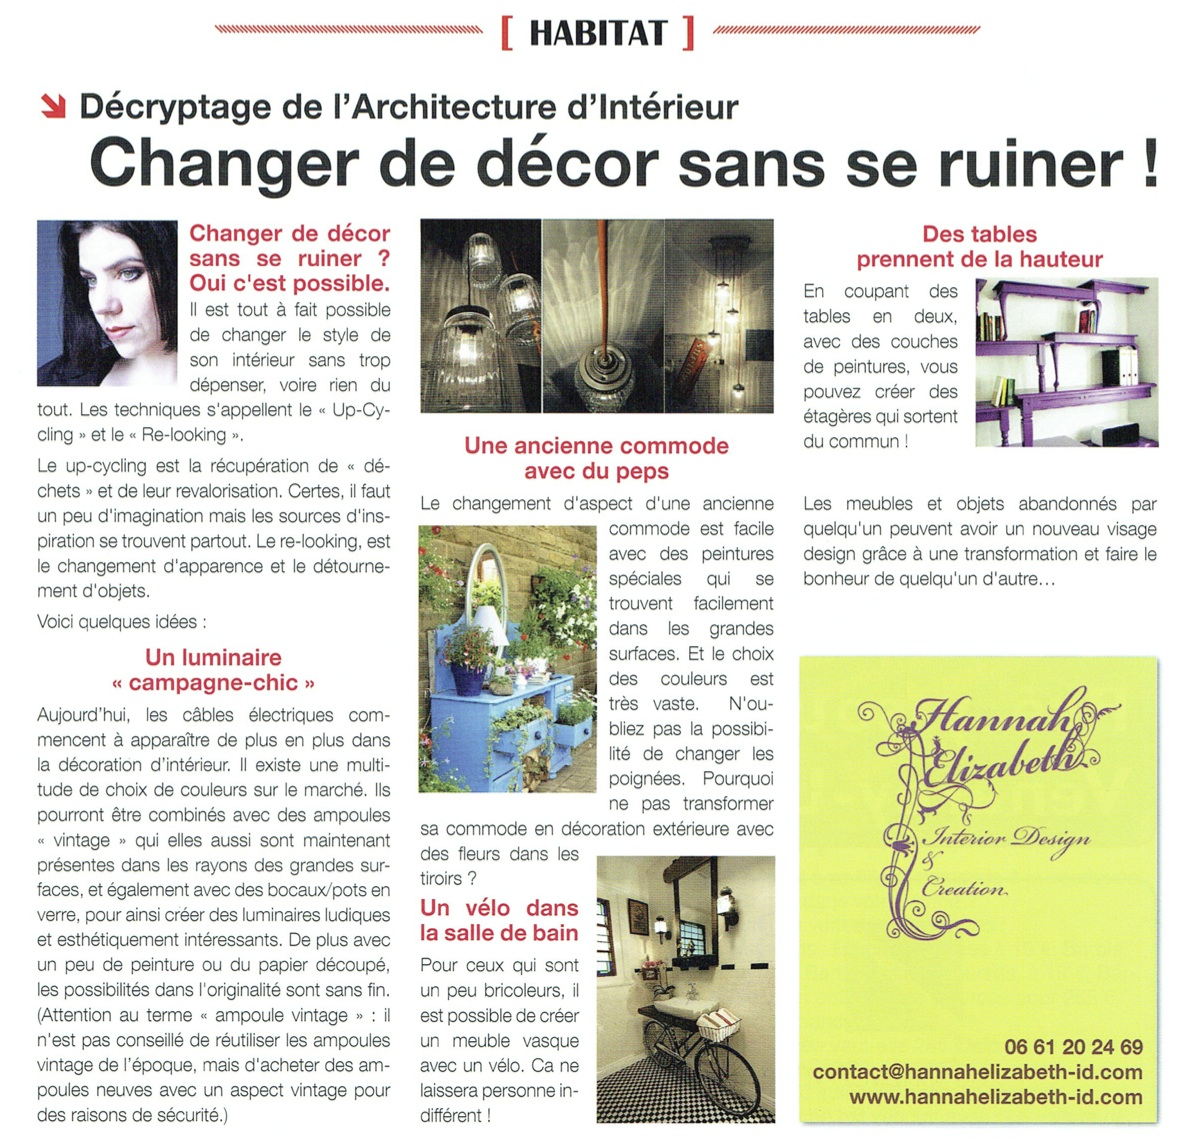 Changer decor sans se ruiner